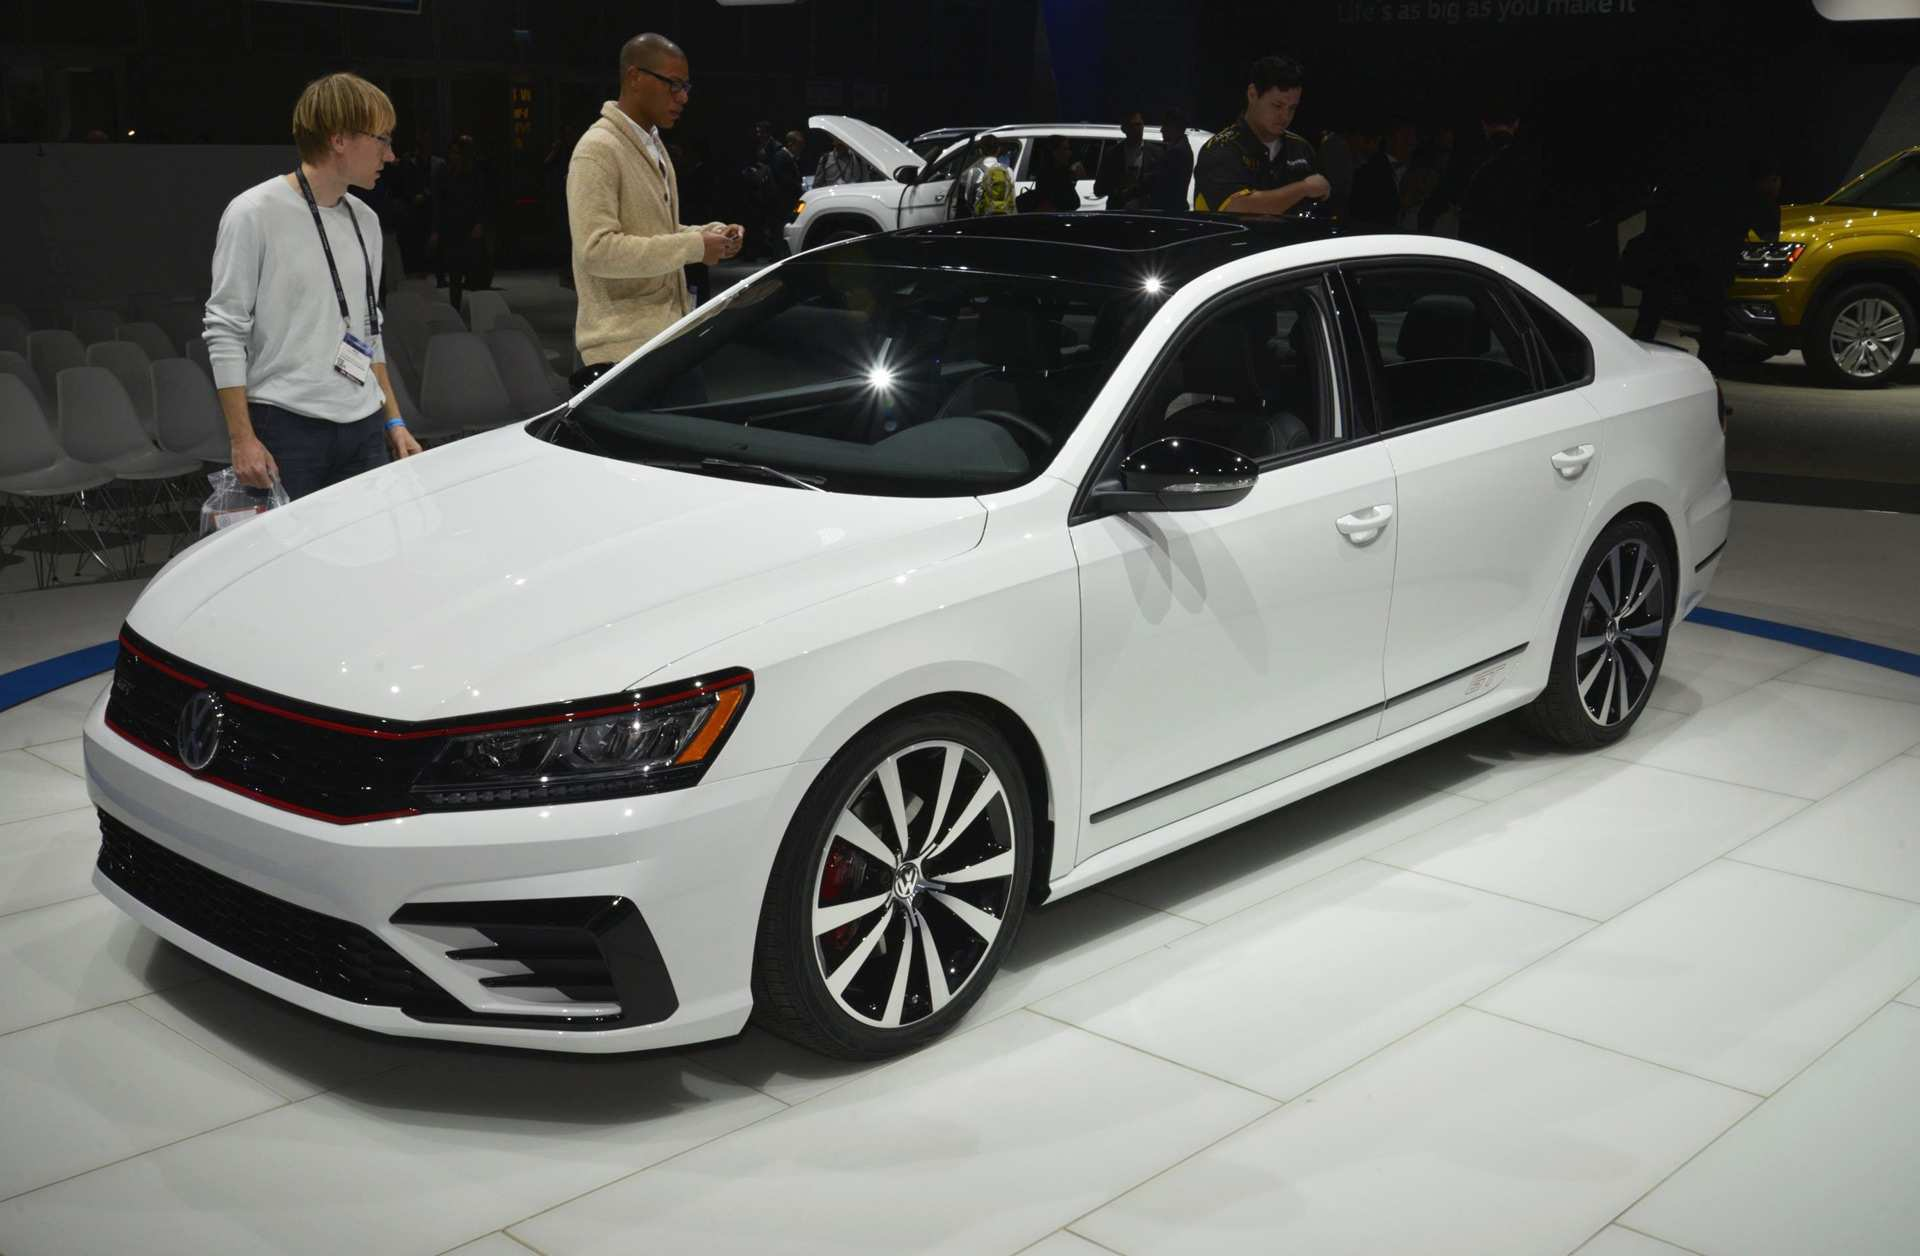 73 Great VW Passat Gt 2020 Redesign and Concept by VW Passat Gt 2020